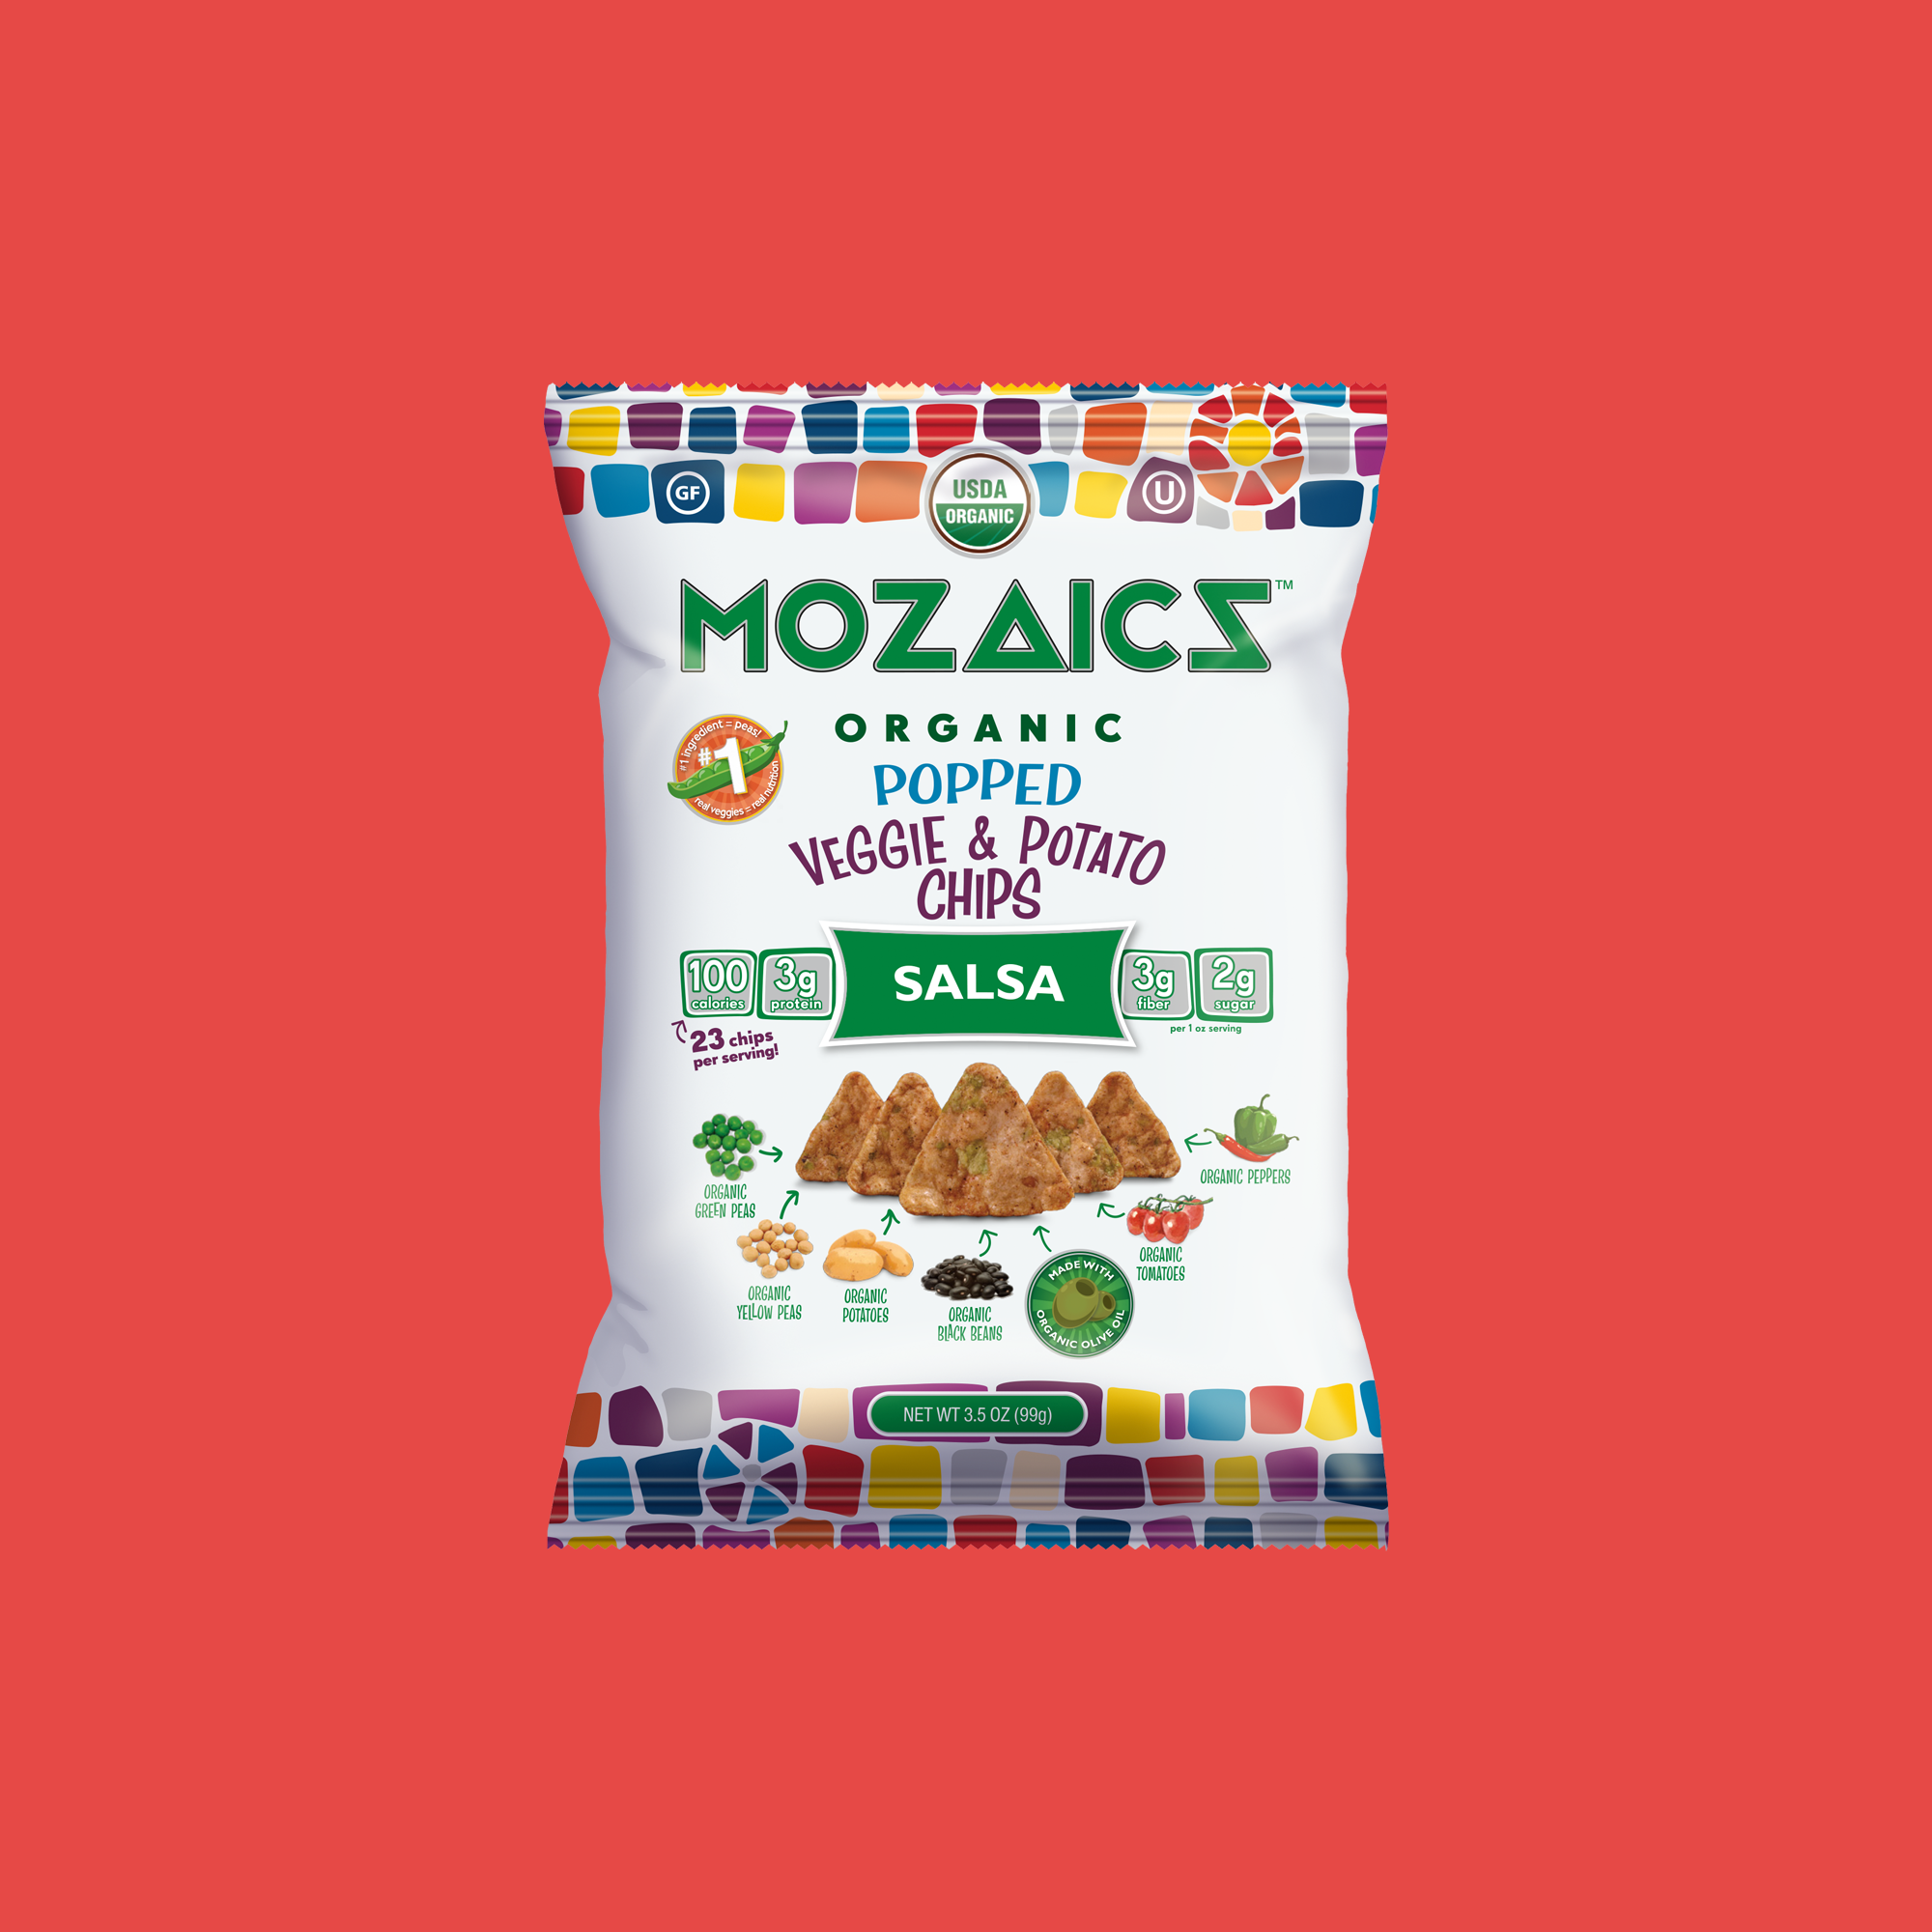 mozaic-salsa-35oz-red.png